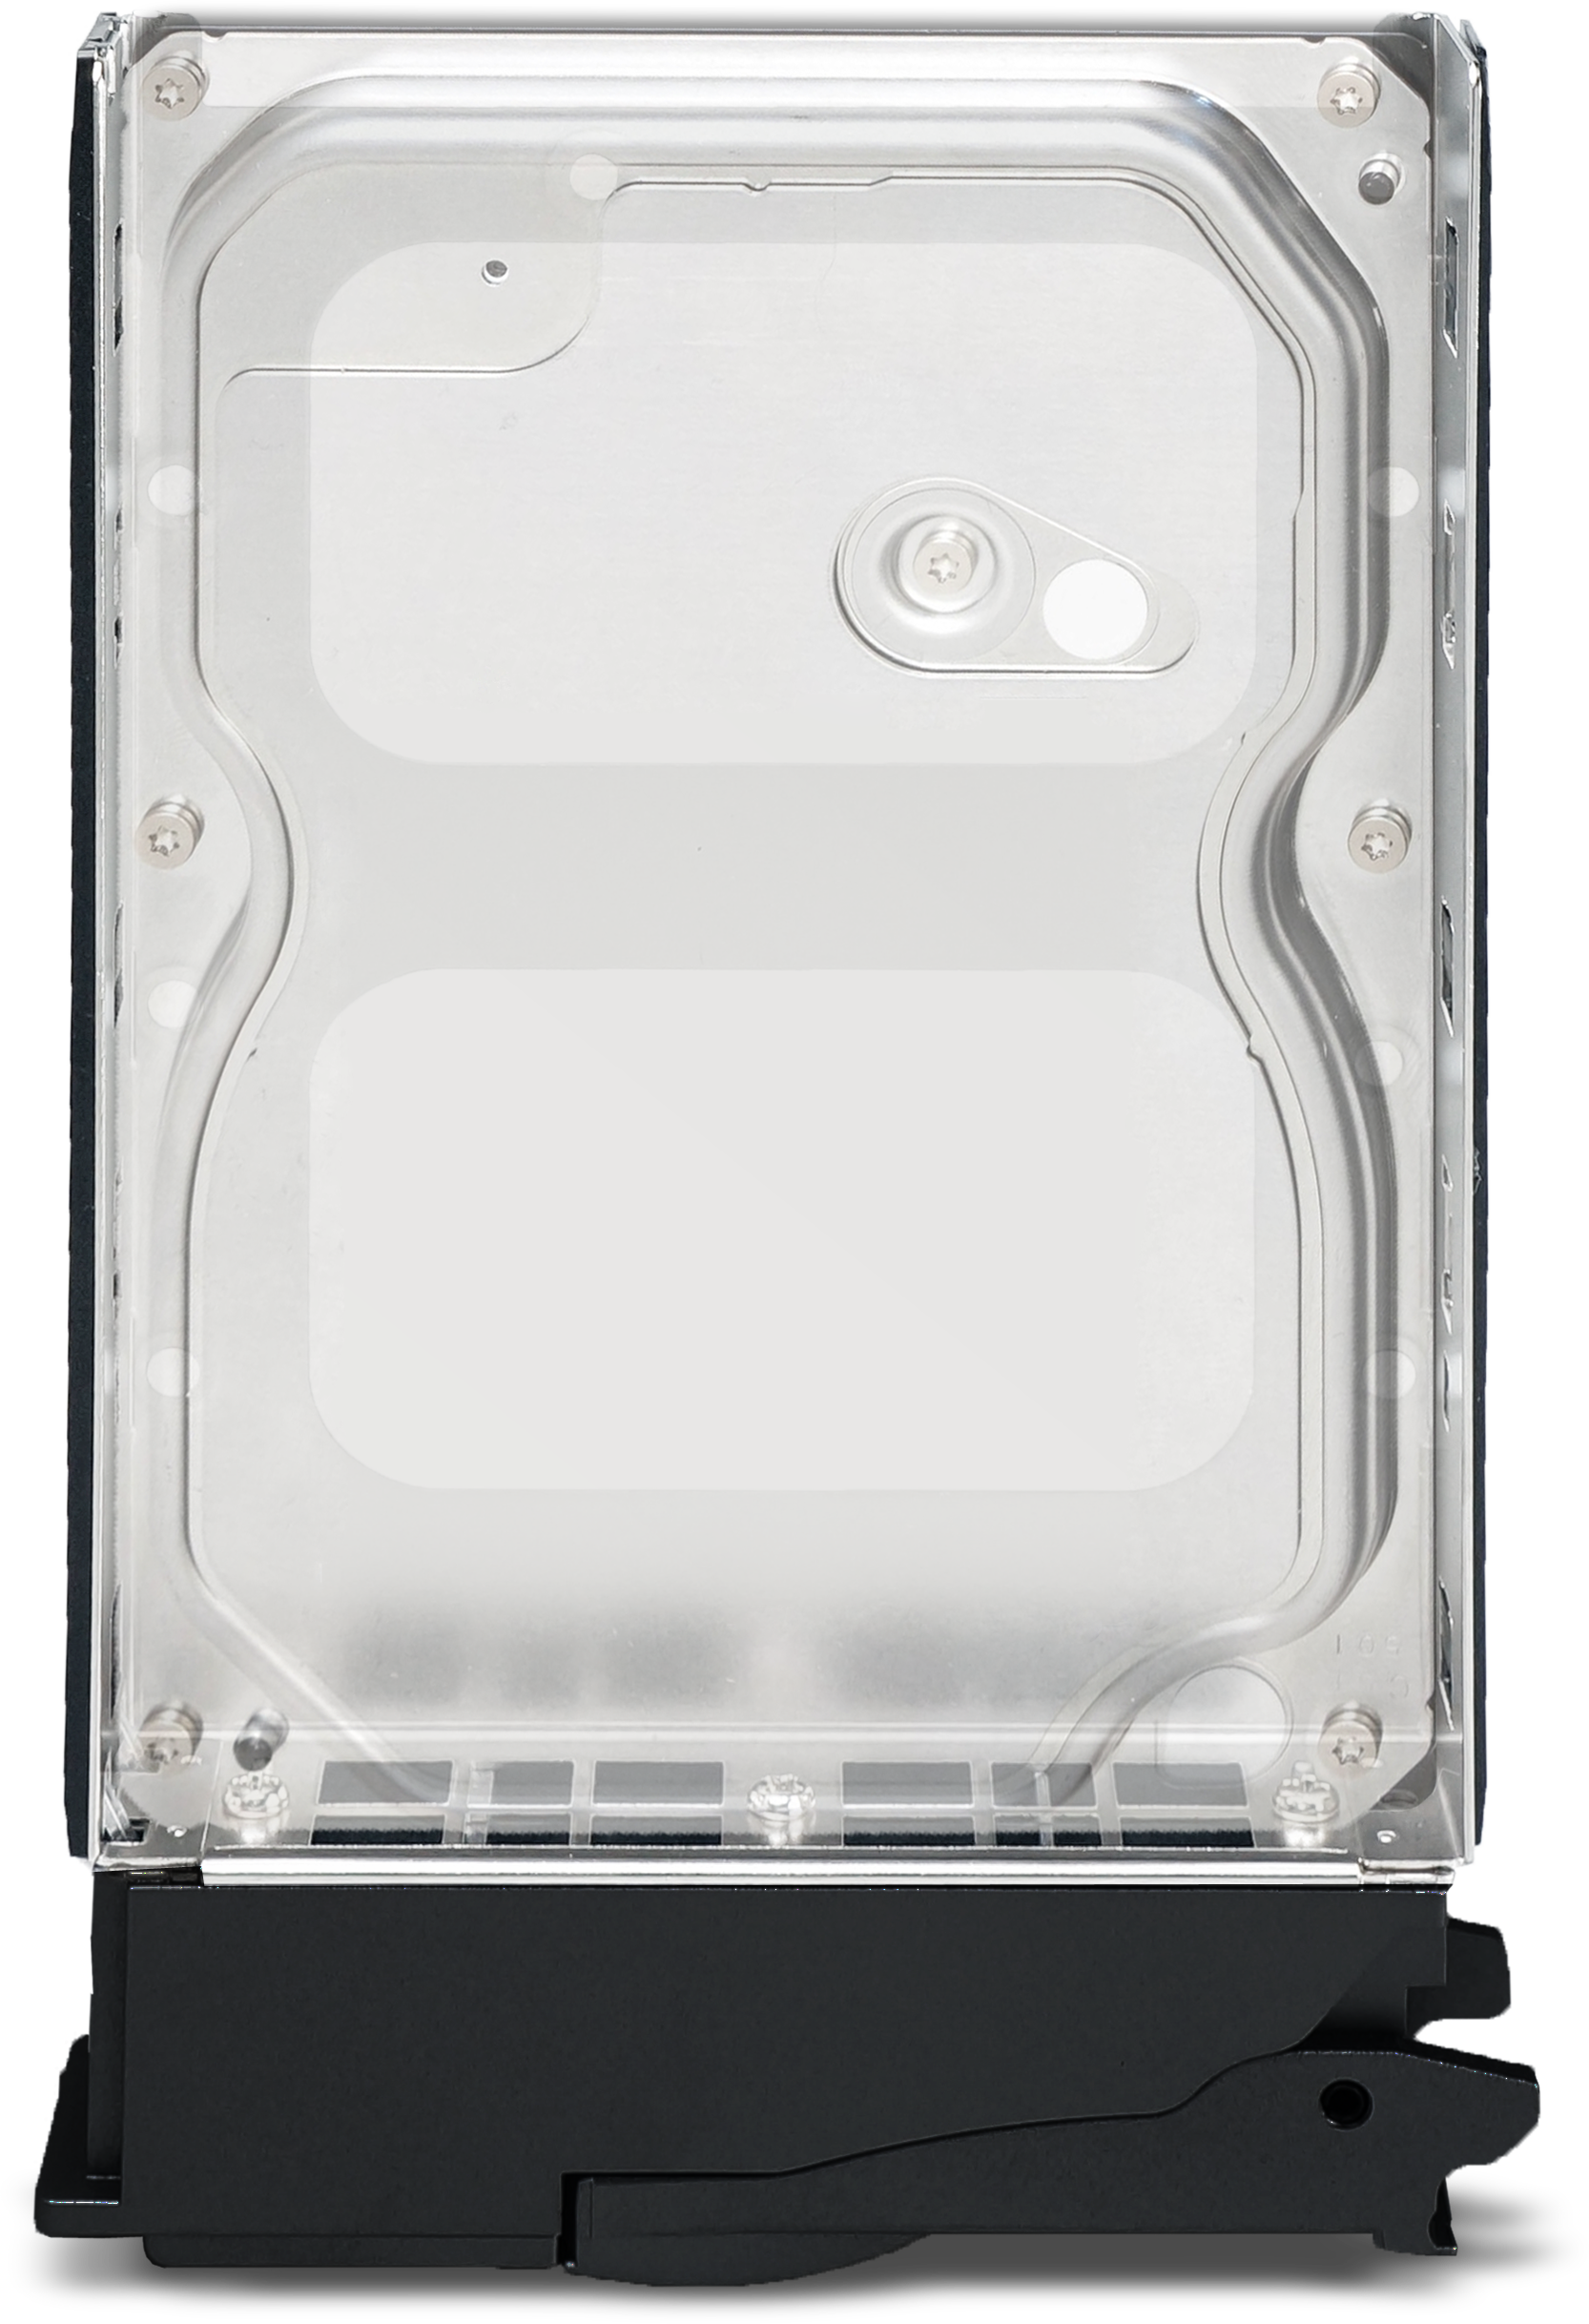 2.5 or 3.5-inch hard drive tray